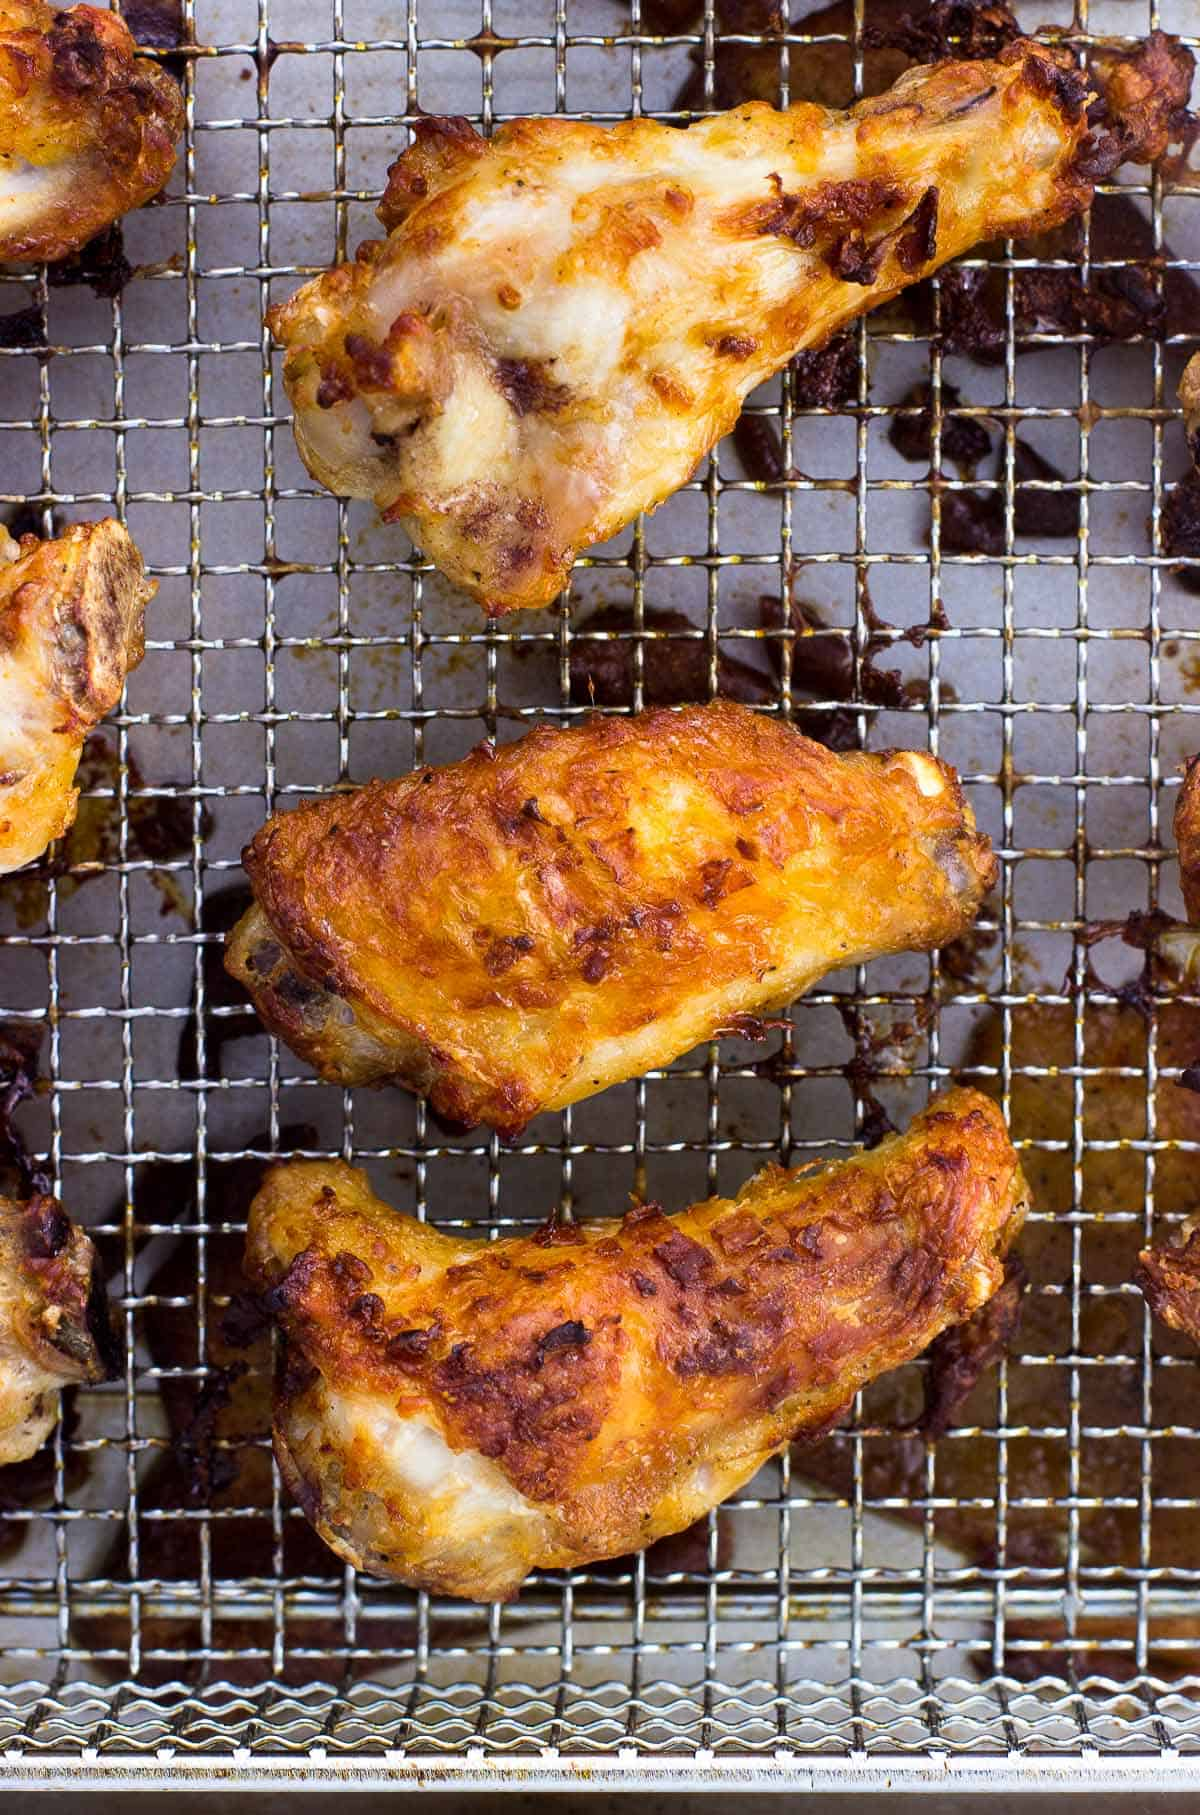 An overhead picture of fully cooked chicken wings on a metal air fryer basket